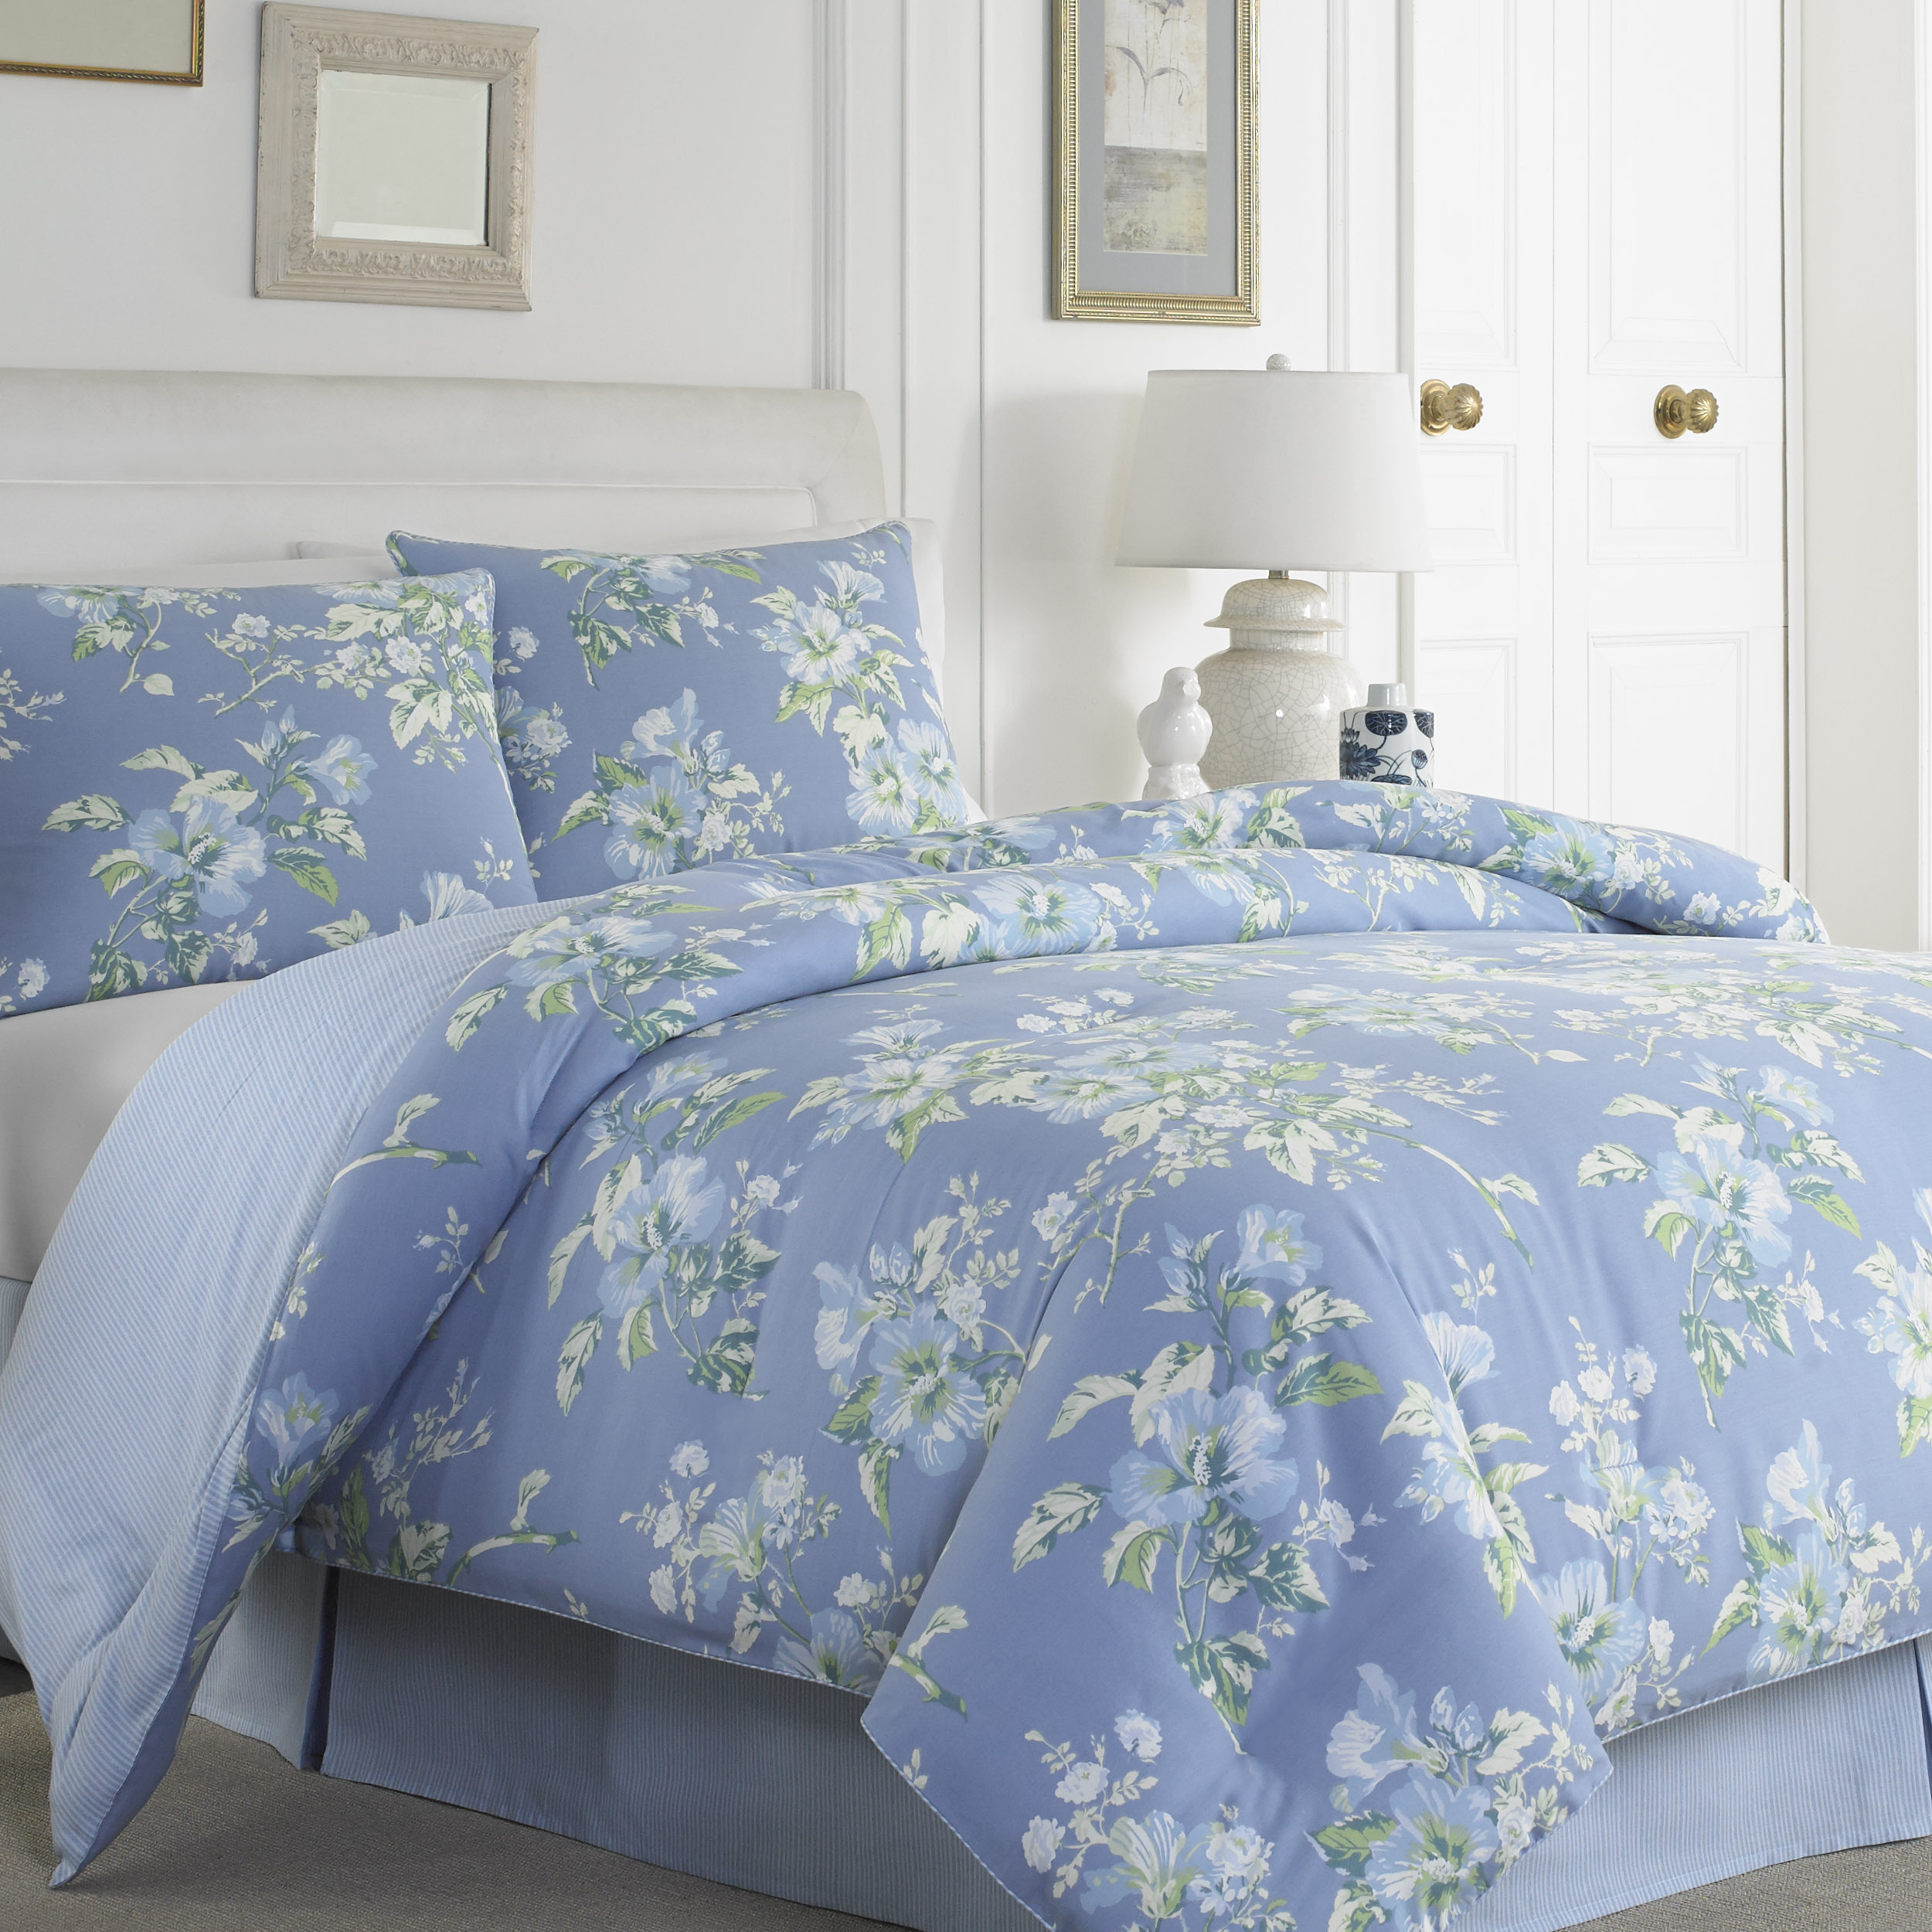 charming bedding in blue and floral pattern by laura ashley bedding with white headboard on wheat floor matched with white wall plus table standing lamp for bedroom decor ideas